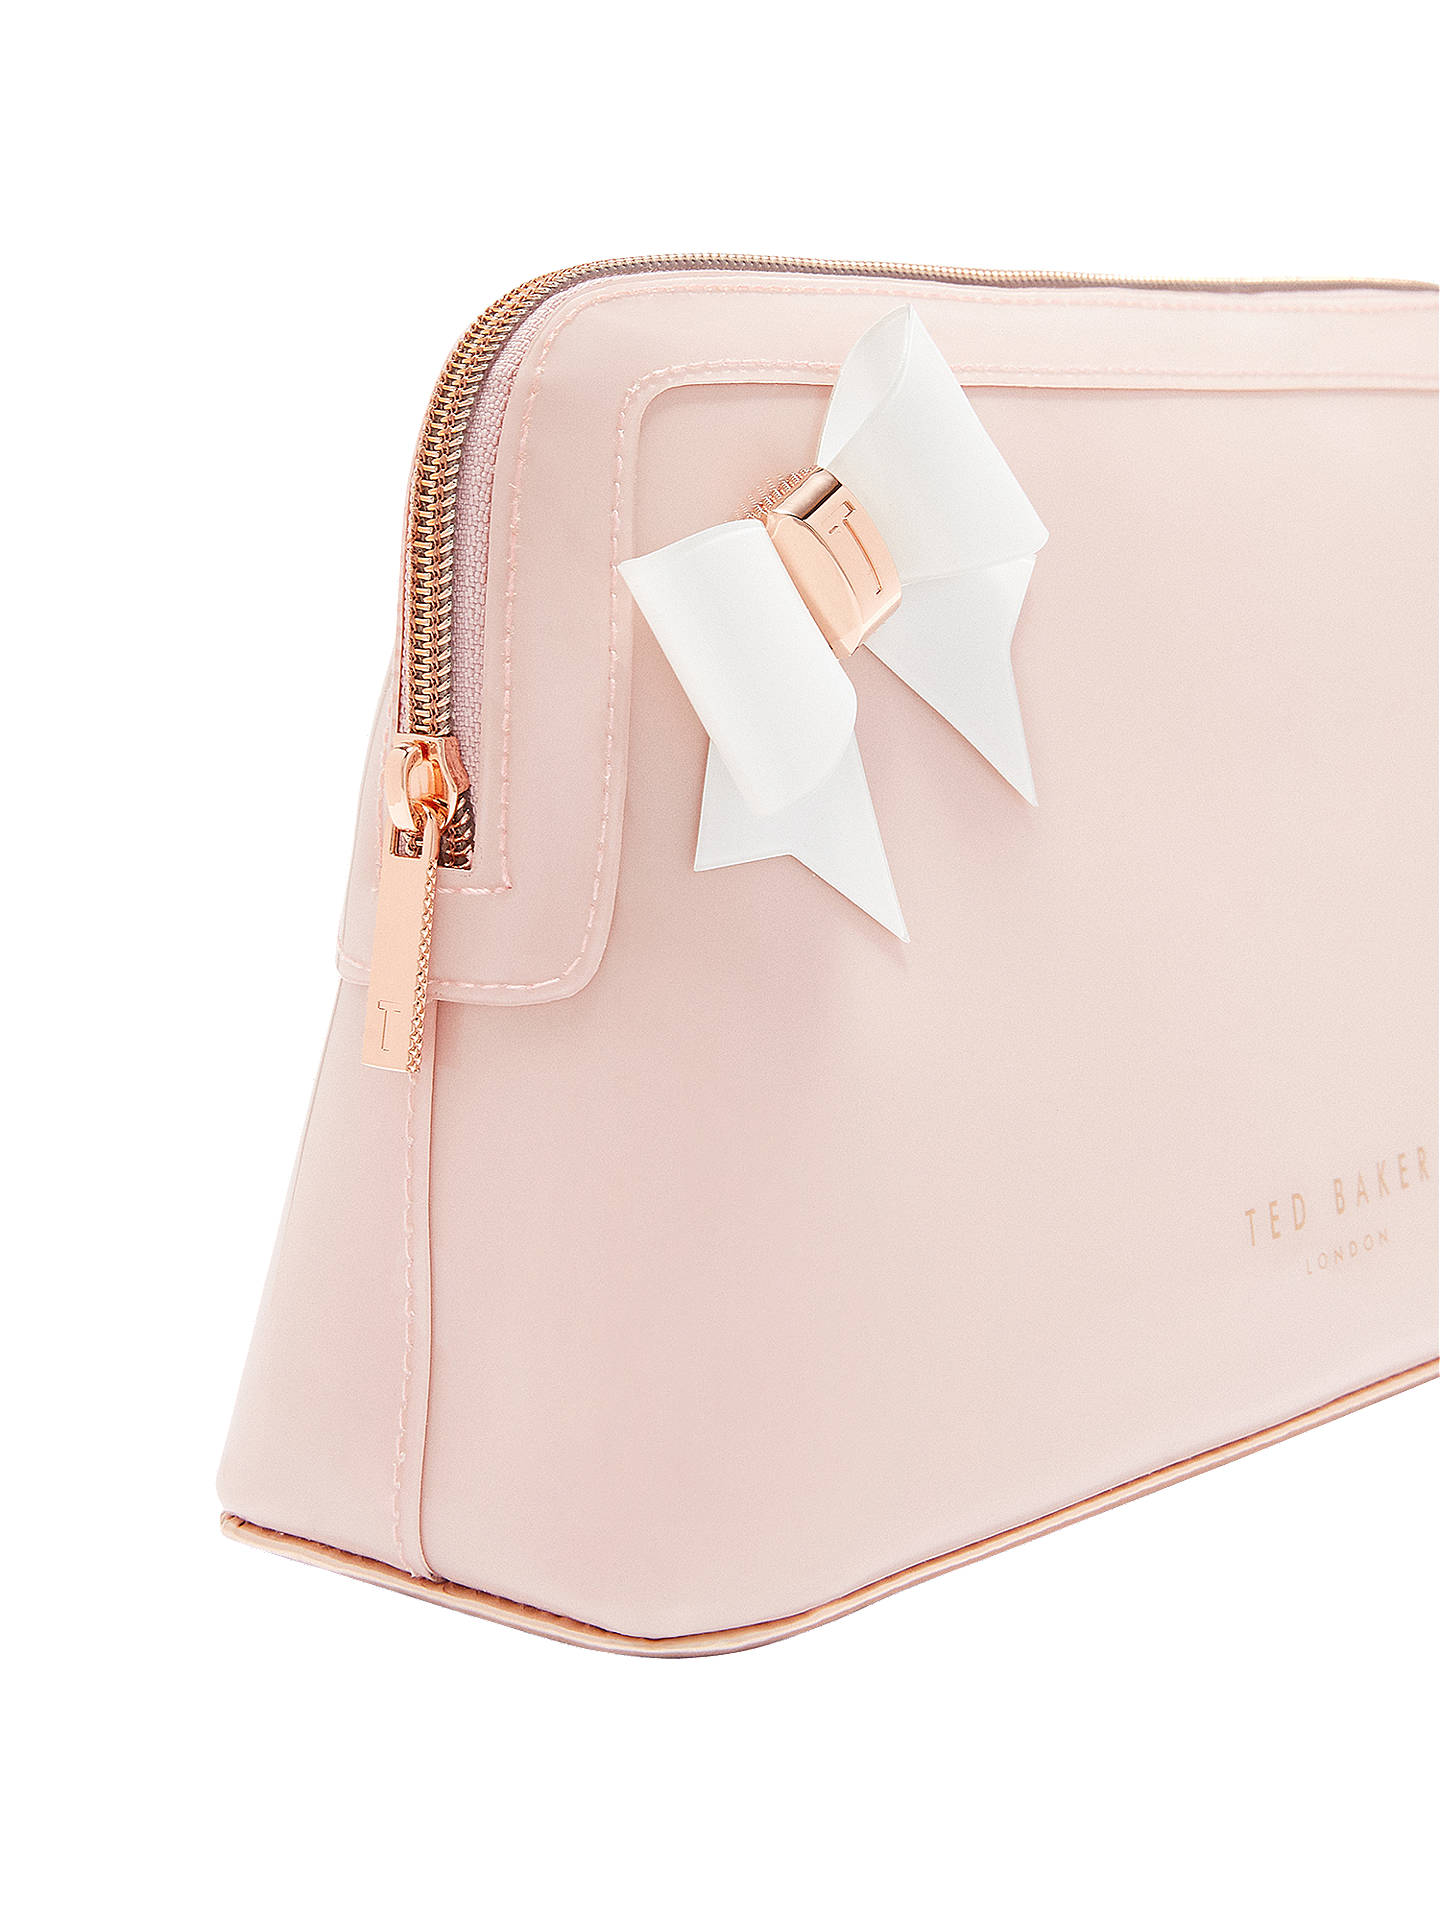 BuyTed Baker Alley Bow Wash Bag, Pink Online at johnlewis.com